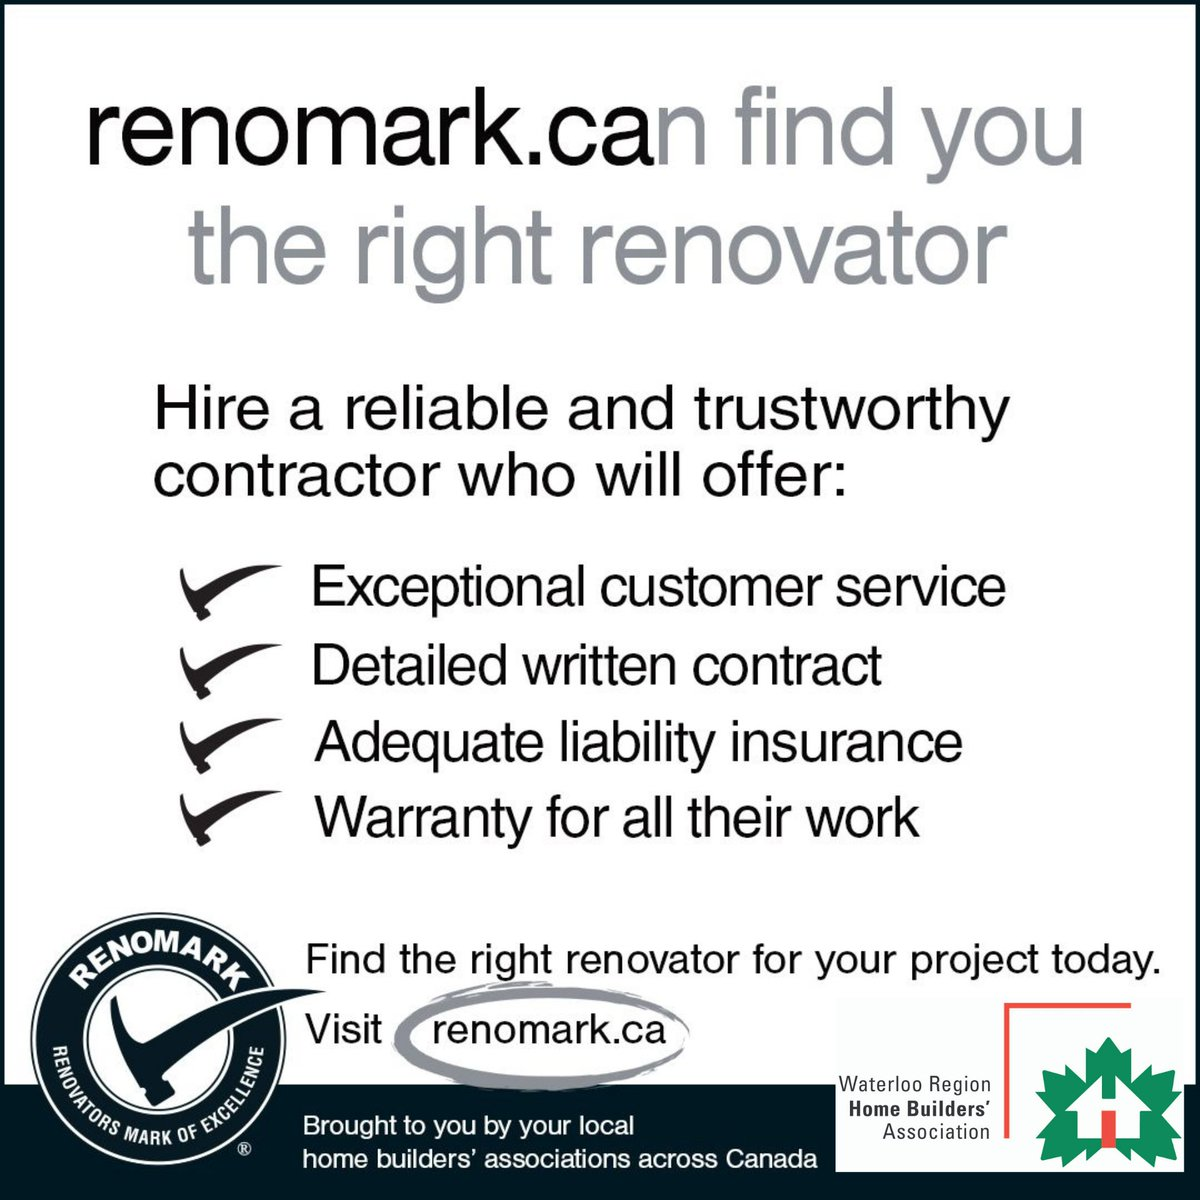 @RenoMark_ca and WRHBA helps you find the right professional #contractor for your home reno.  #kwawesome #waterlooregion #waterloo #kitchener #ontario #wrhba #homebuilders #homebeliever #homebuildersassociation #renovator #renovation #waterloobuilderpic.twitter.com/sdOg0weApw